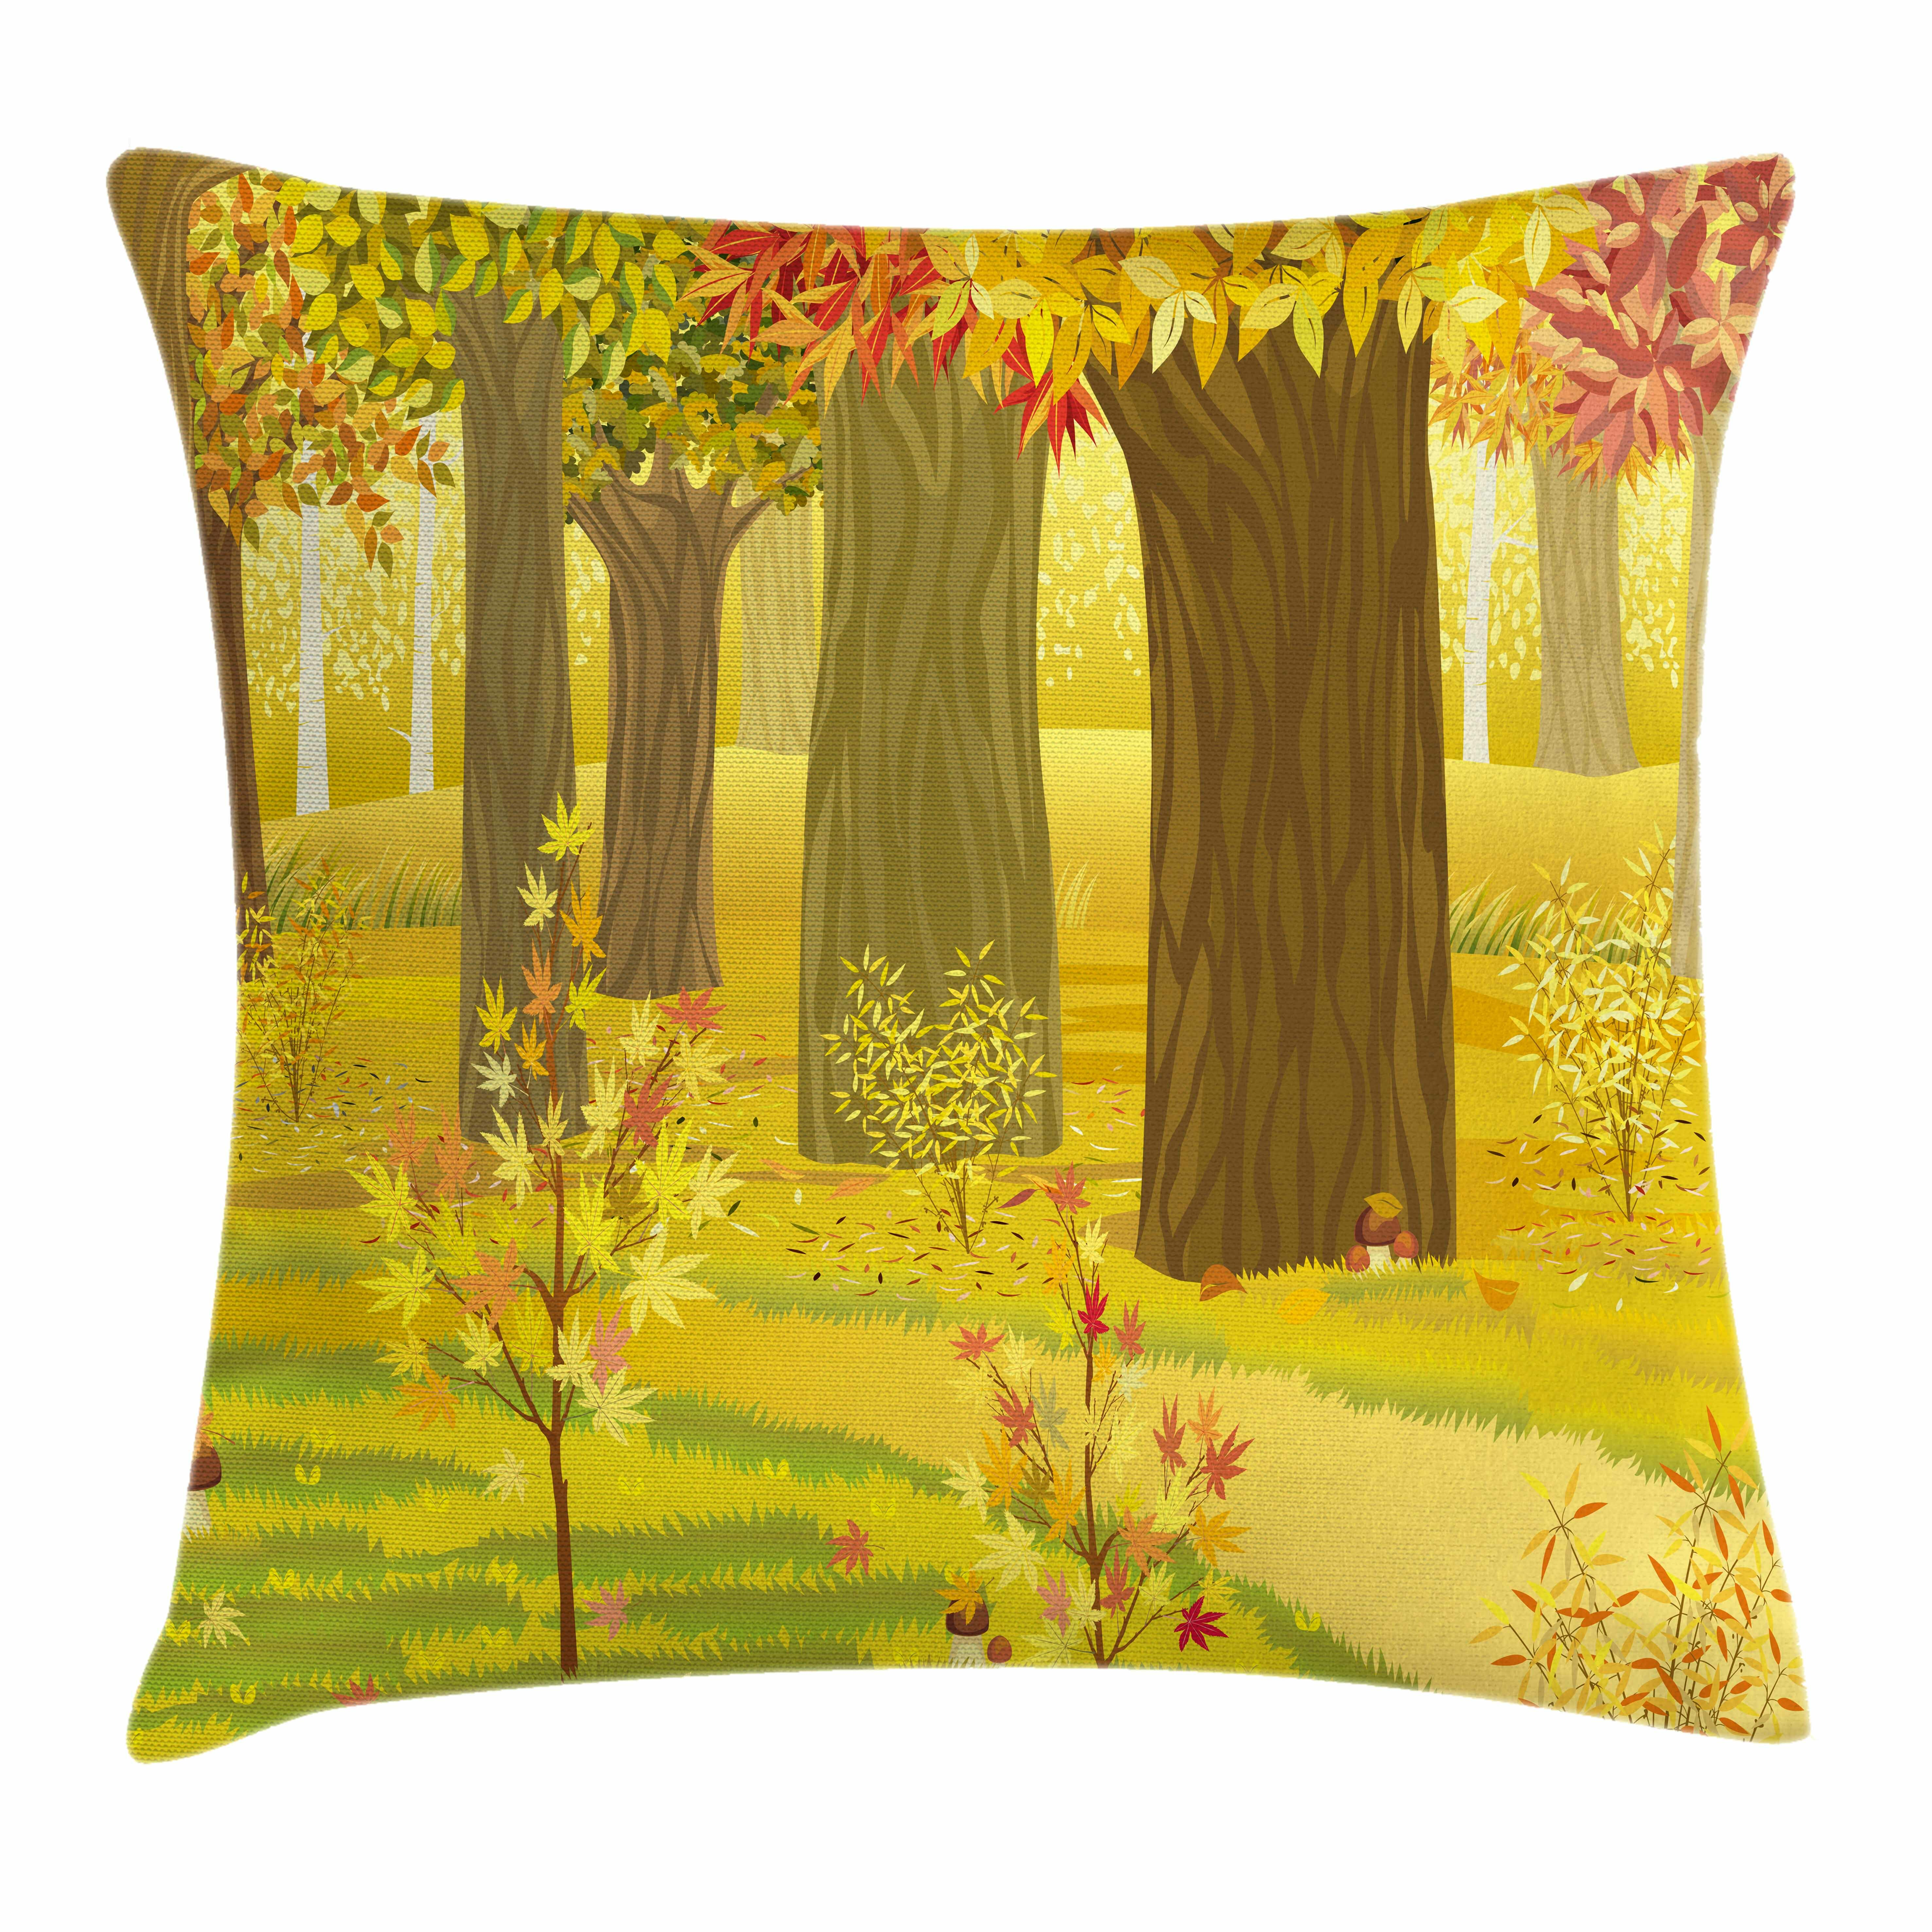 Ambesonne Fall Decor Fantasy Dream Forest Square Pillow